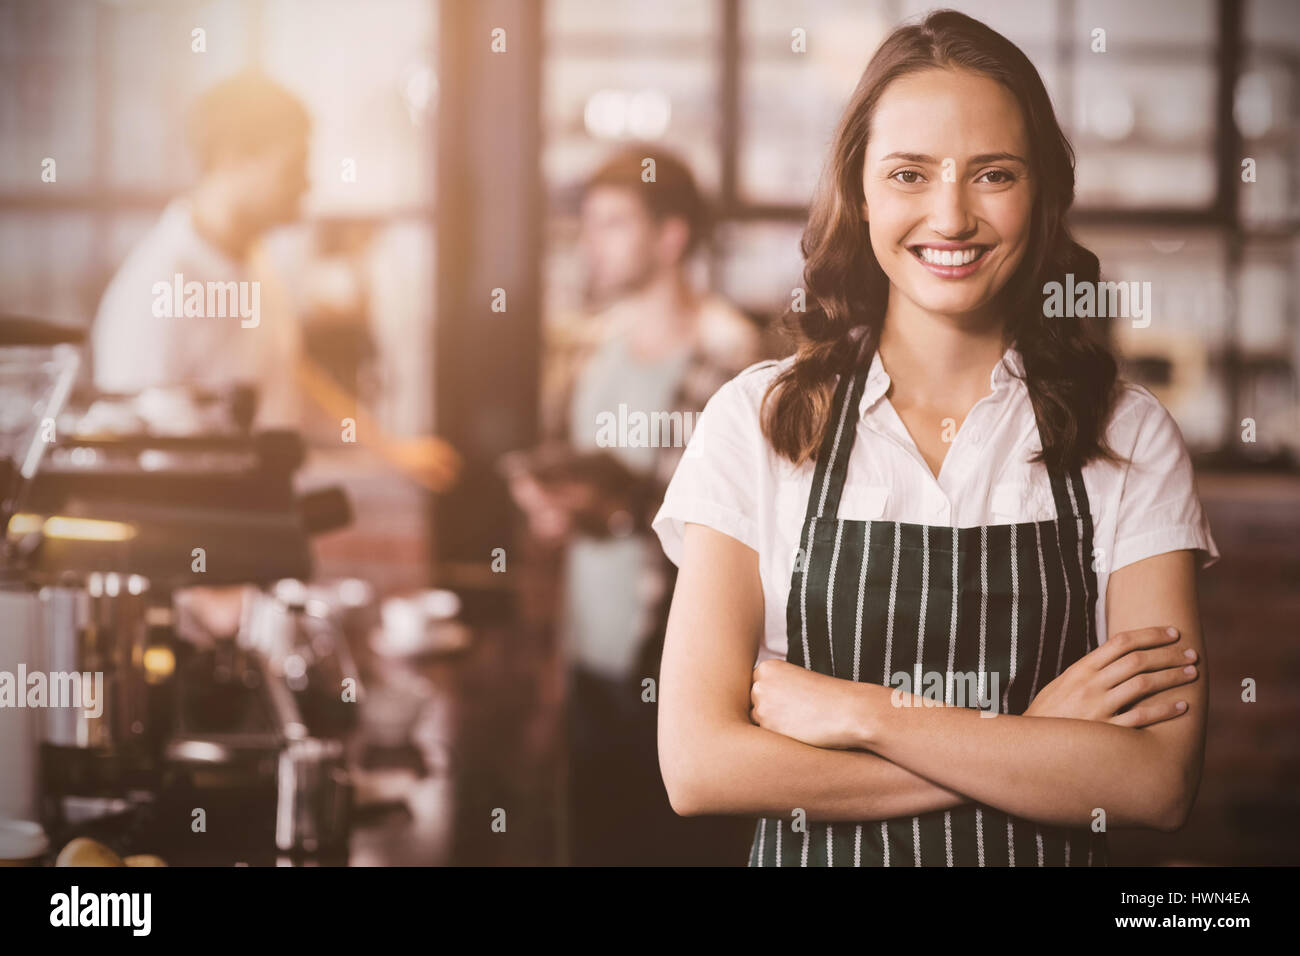 flare against pretty barista with arms crossed - Stock Image